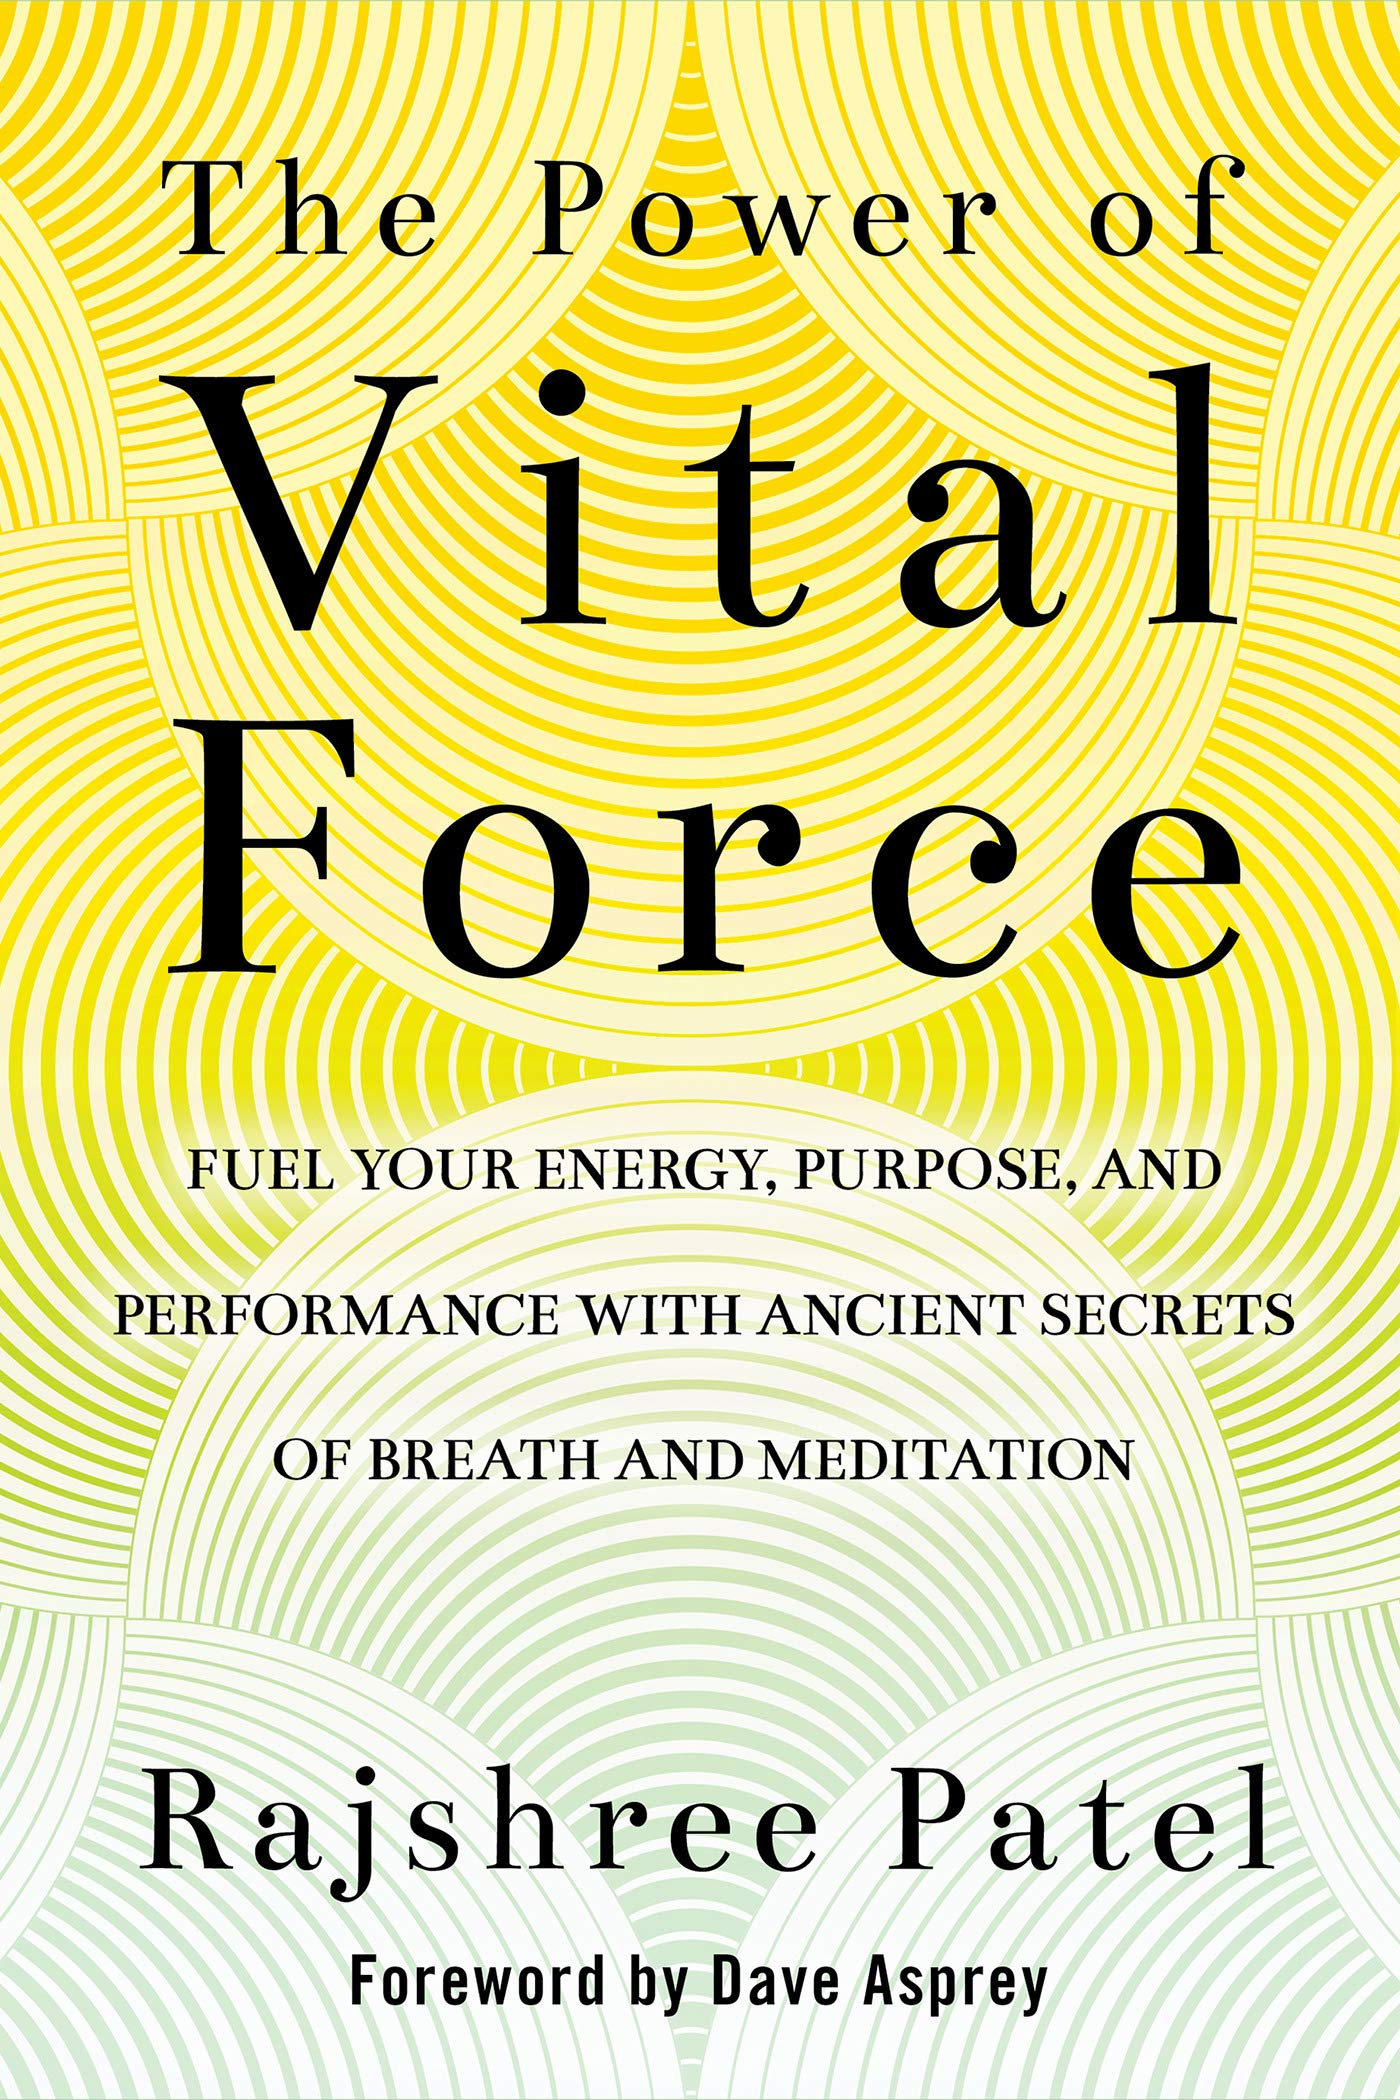 The Power of Vital Force: Fuel Your Energy, Purpose, and Performance with Ancient Secrets of Breath and Meditation by Hay House Inc.